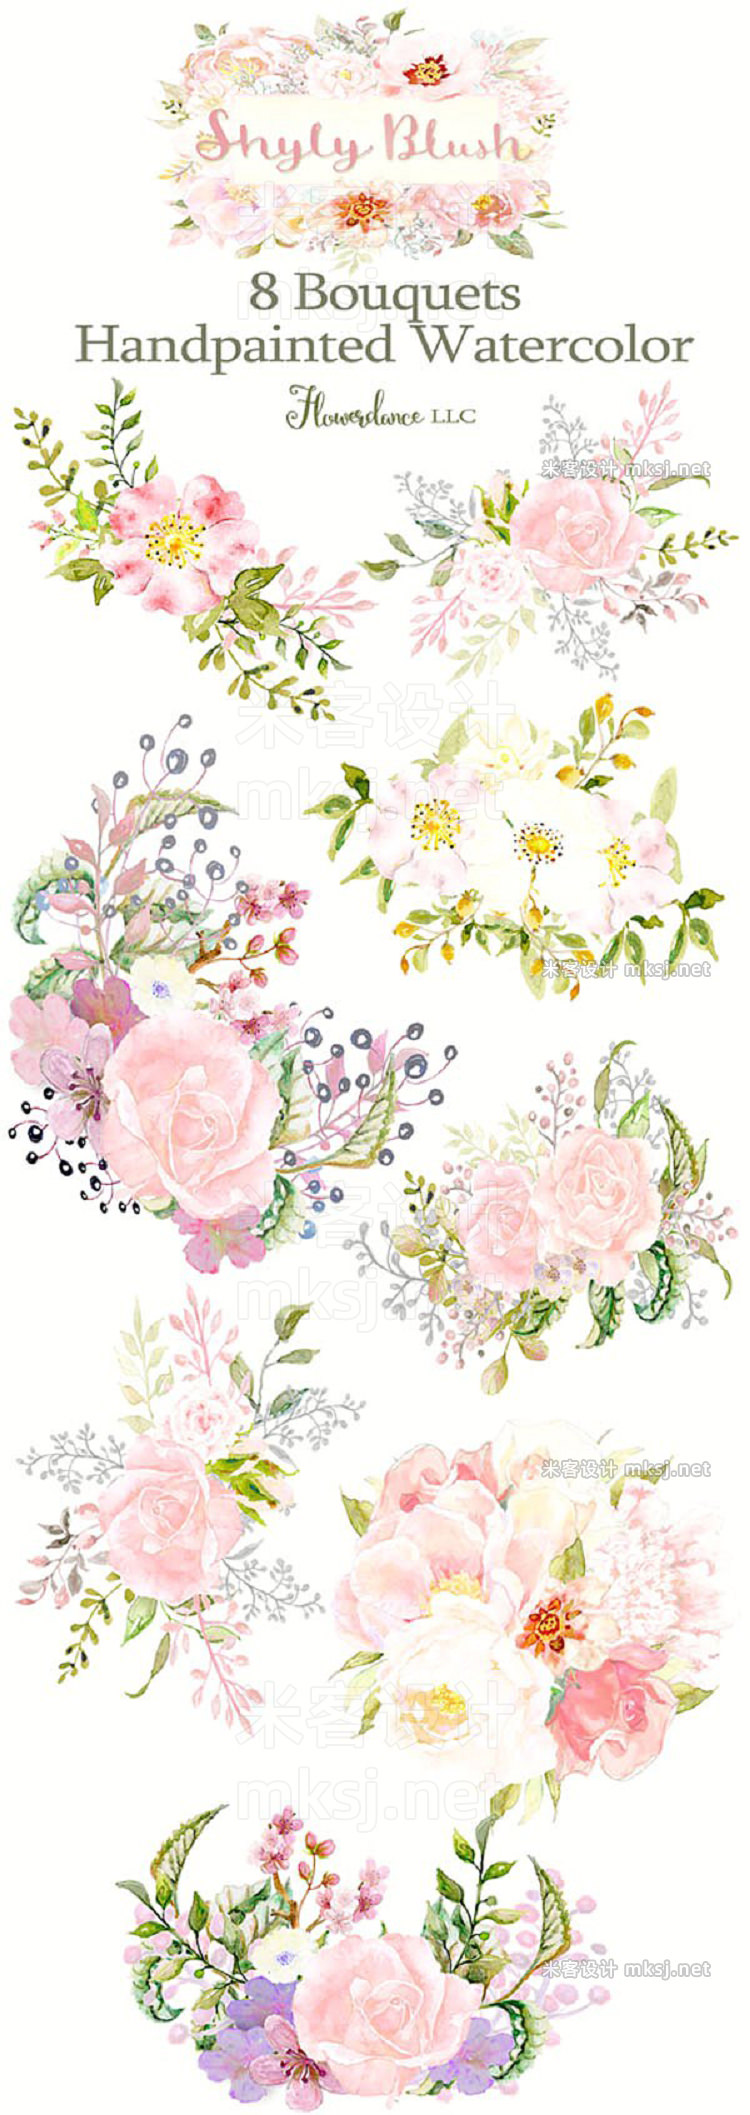 png素材 Shyly Blush Floral Collection